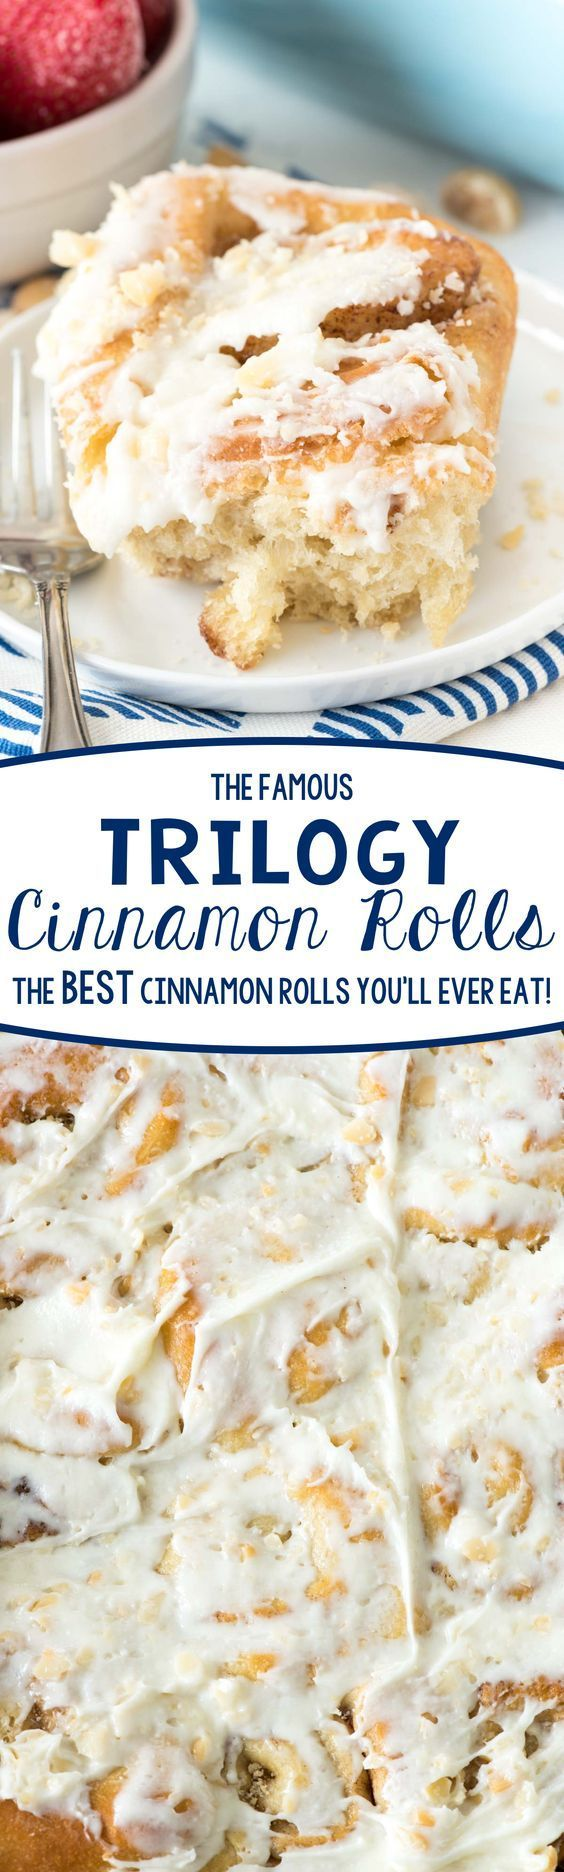 Famous Trilogy Cinnamon Rolls Recipe - this is the BEST CINNAMON ROLL RECIPE I've ever eaten!